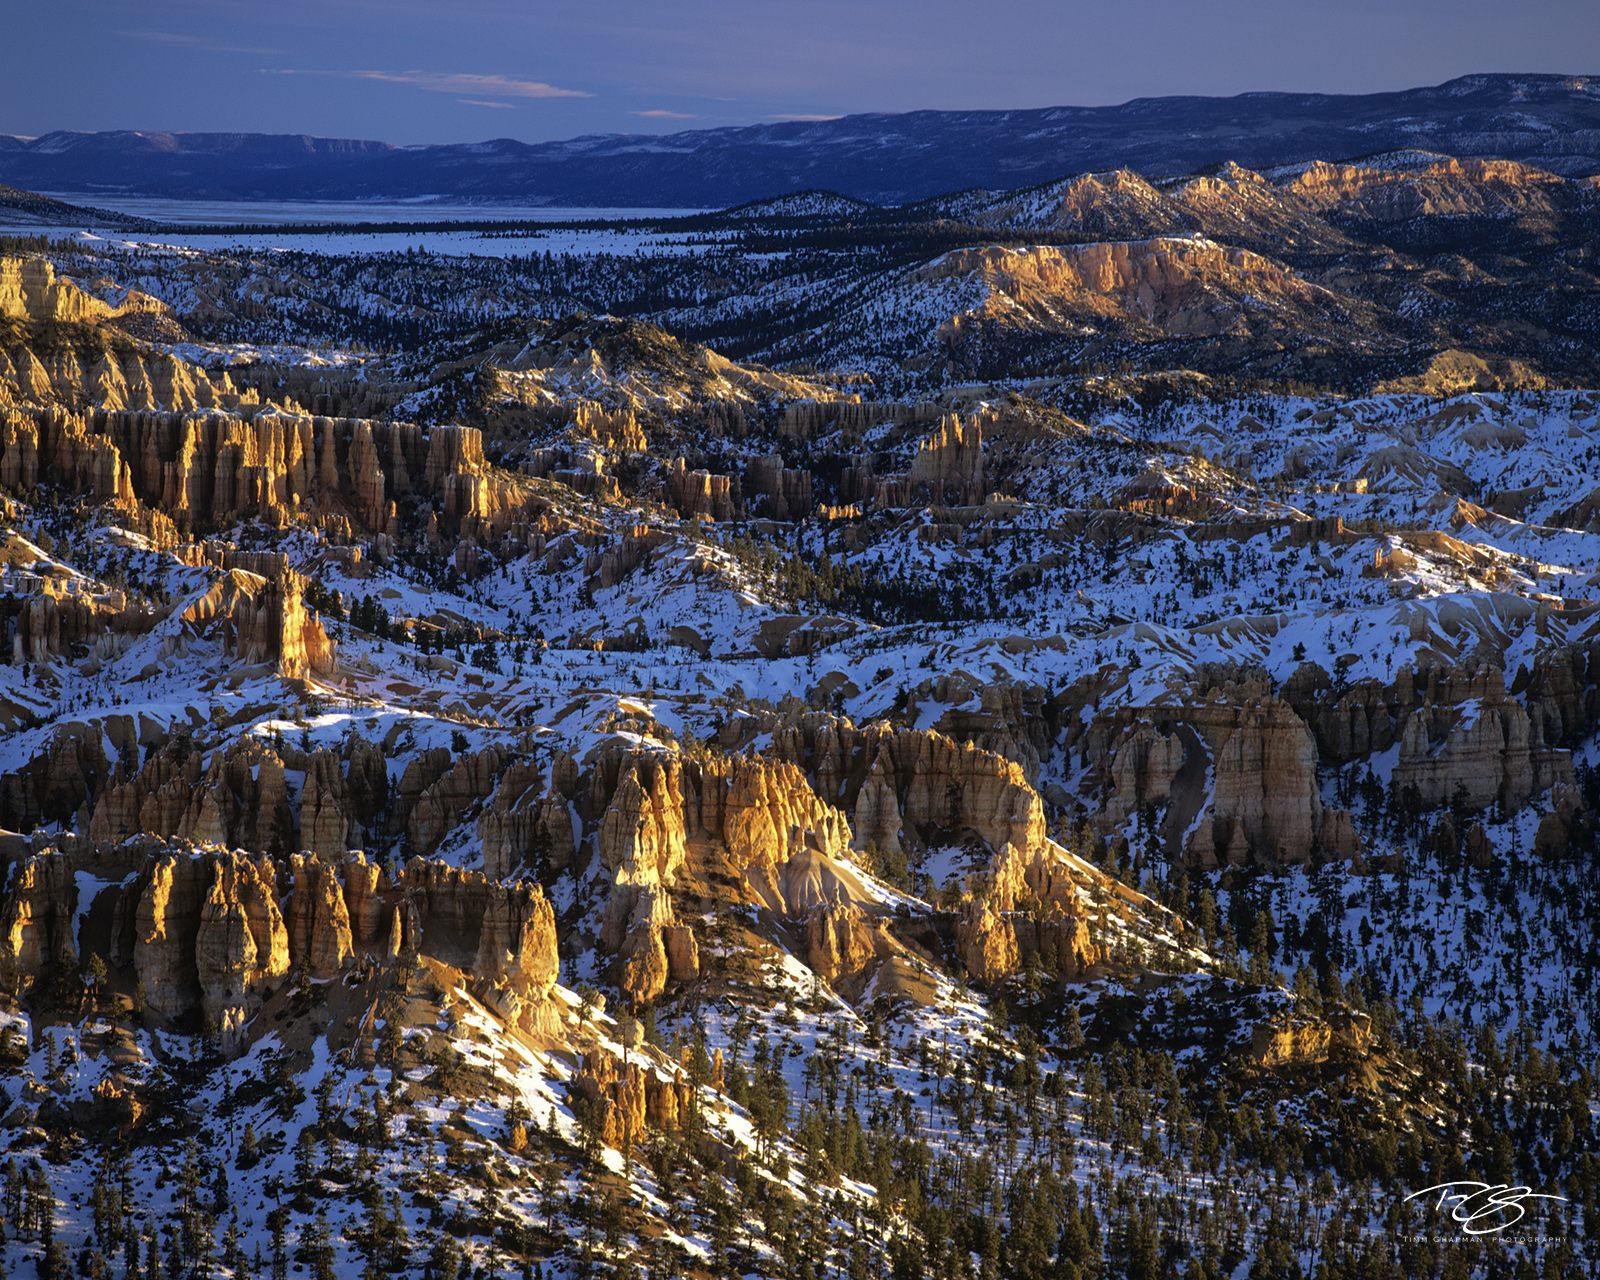 The first rays of the morning sun light the hoodoos of Bryce Canyon in Utah